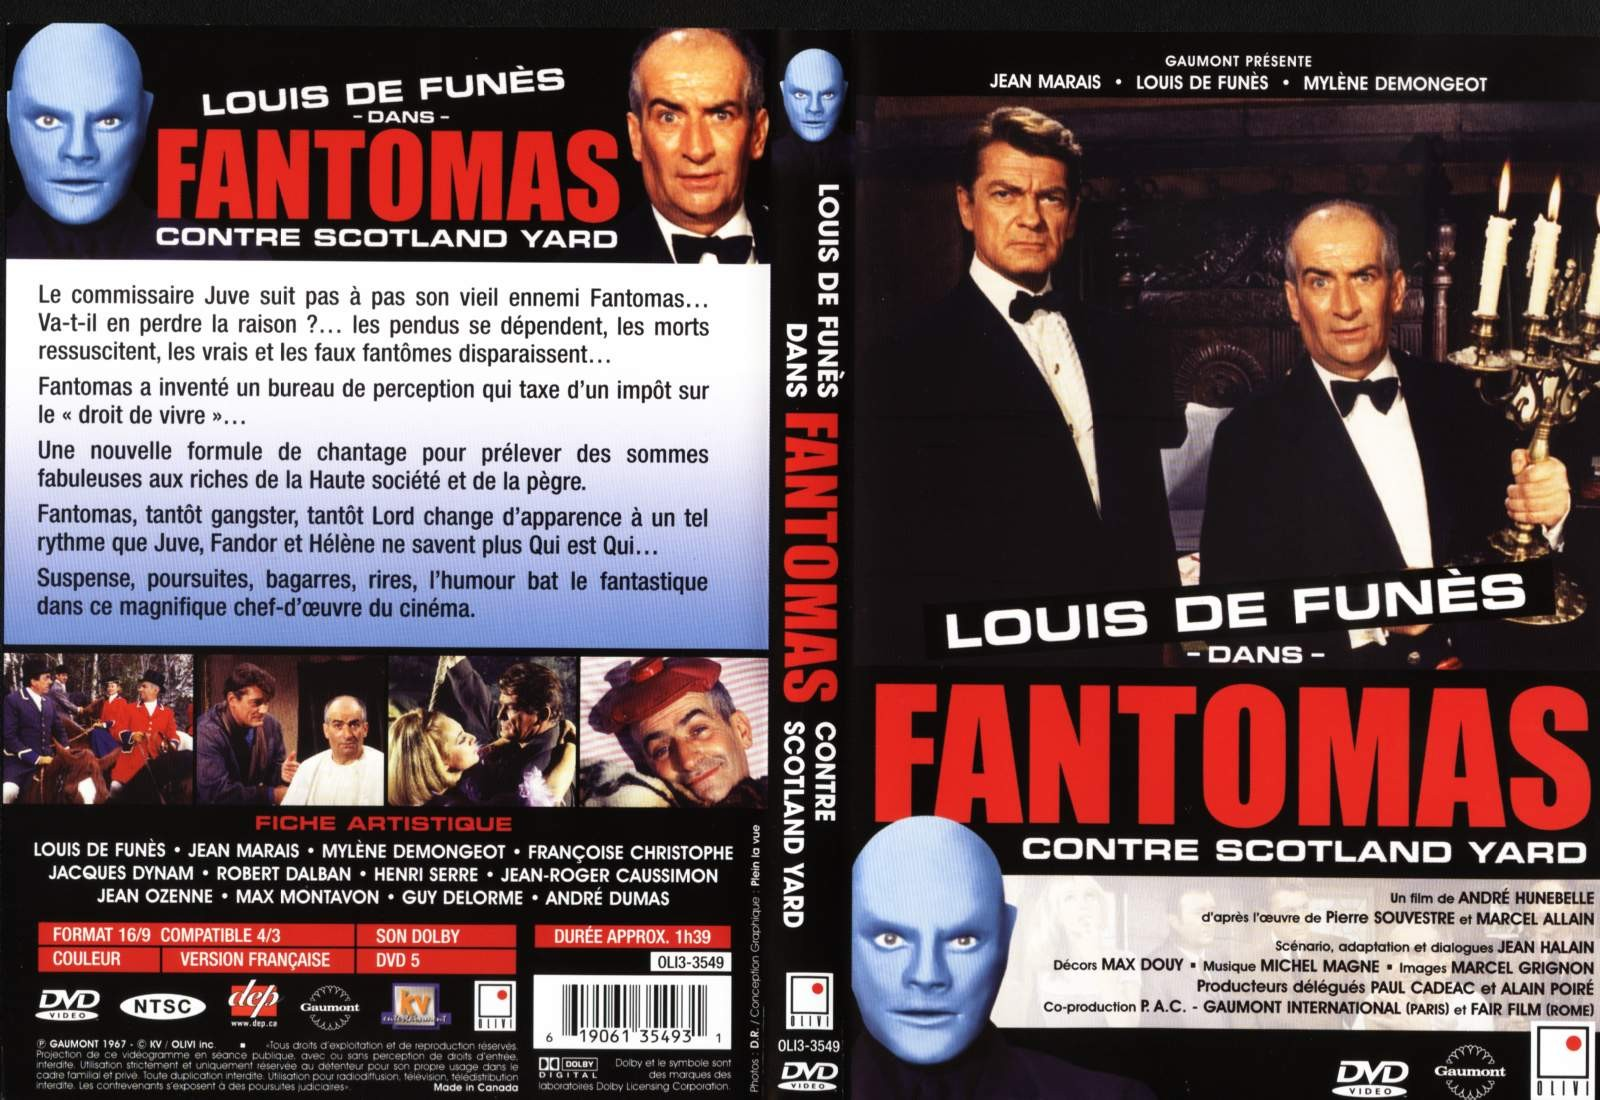 fantomas contre scotland yard